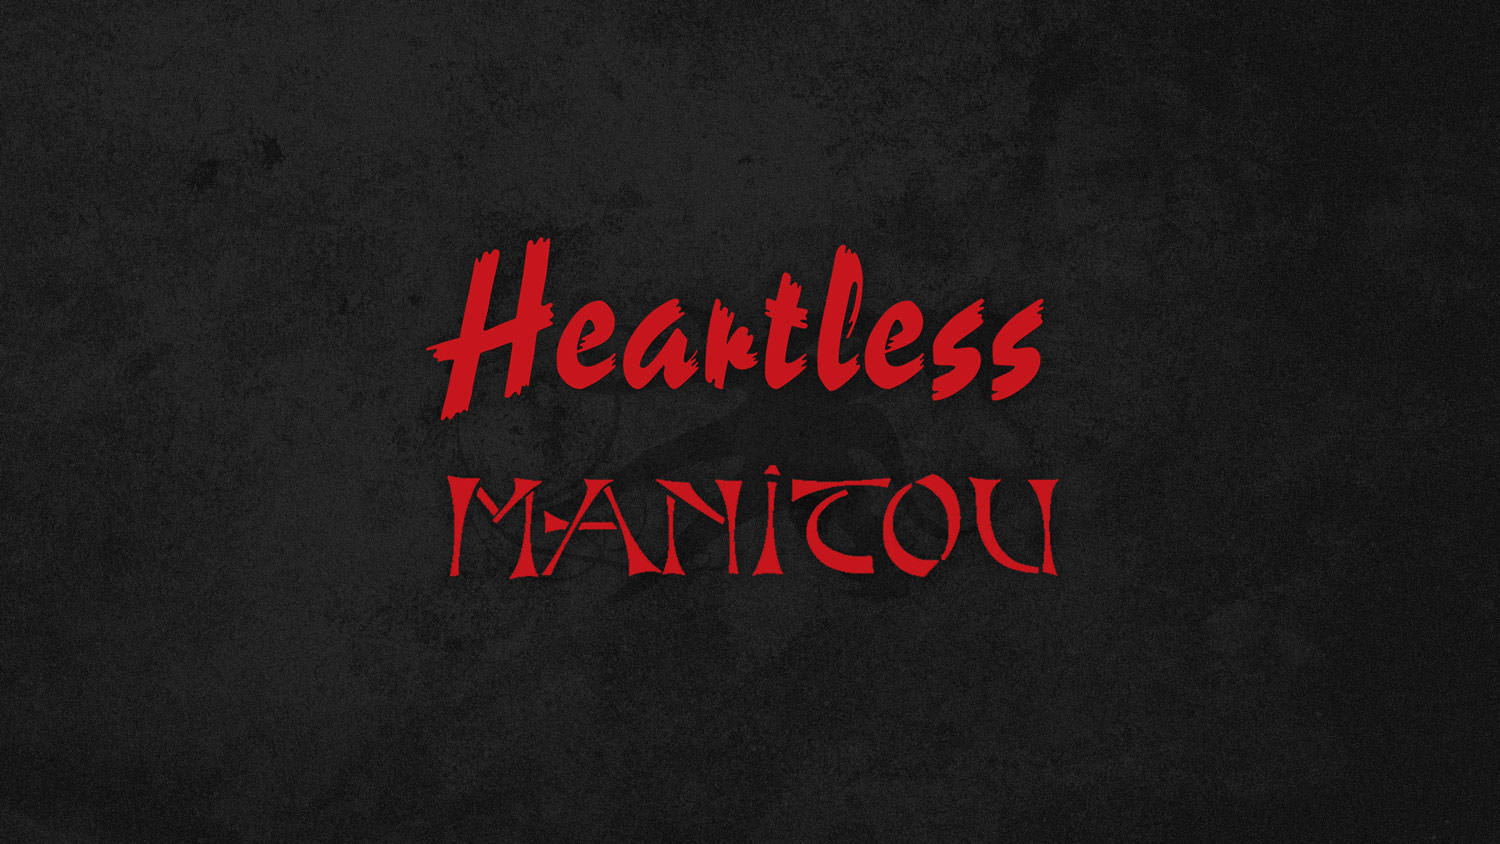 Heartless Og Manitou Gjenoppstår På Norway Rock 2018!